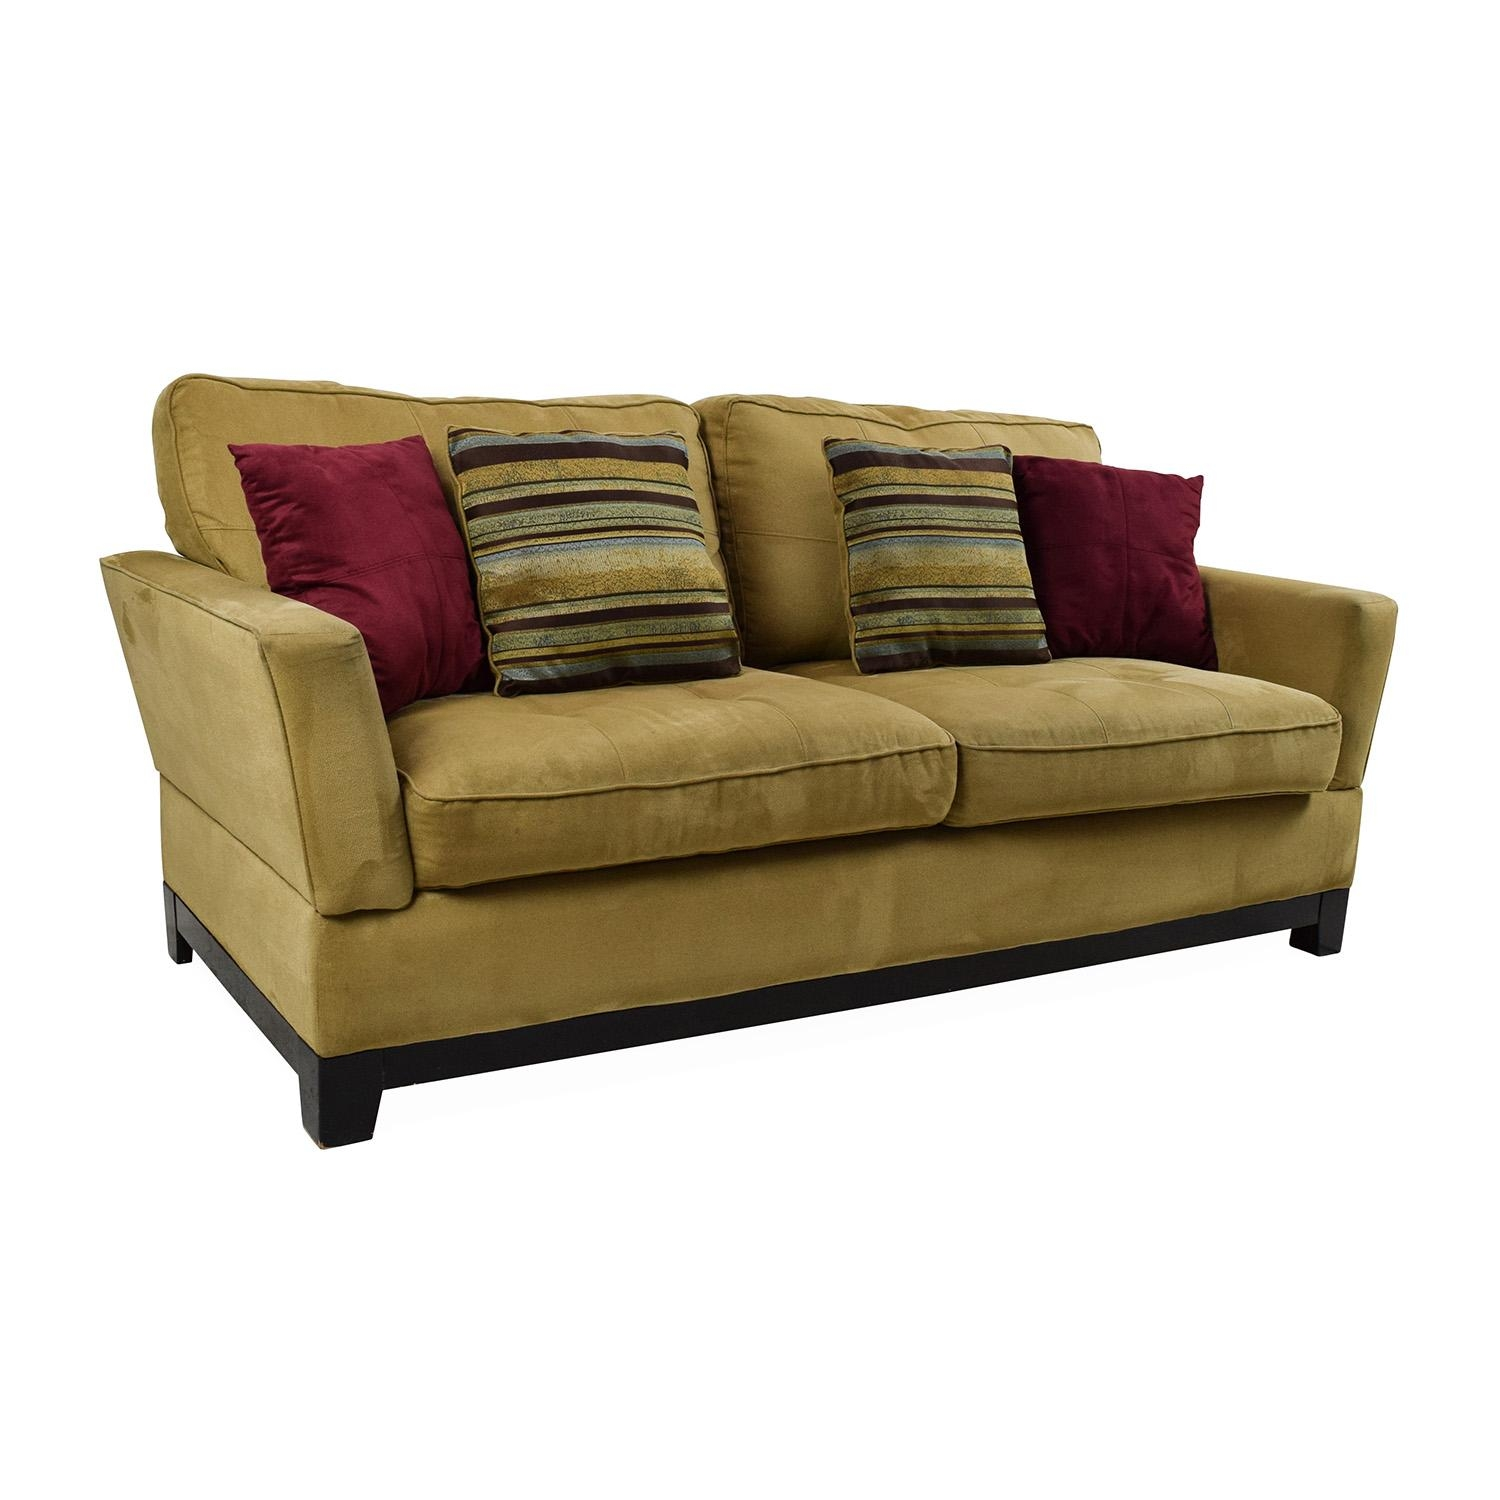 78% Off – Jennifer Convertibles Jennifer Convertibles Tan Sofa / Sofas In Jennifer Sofas (Image 7 of 20)